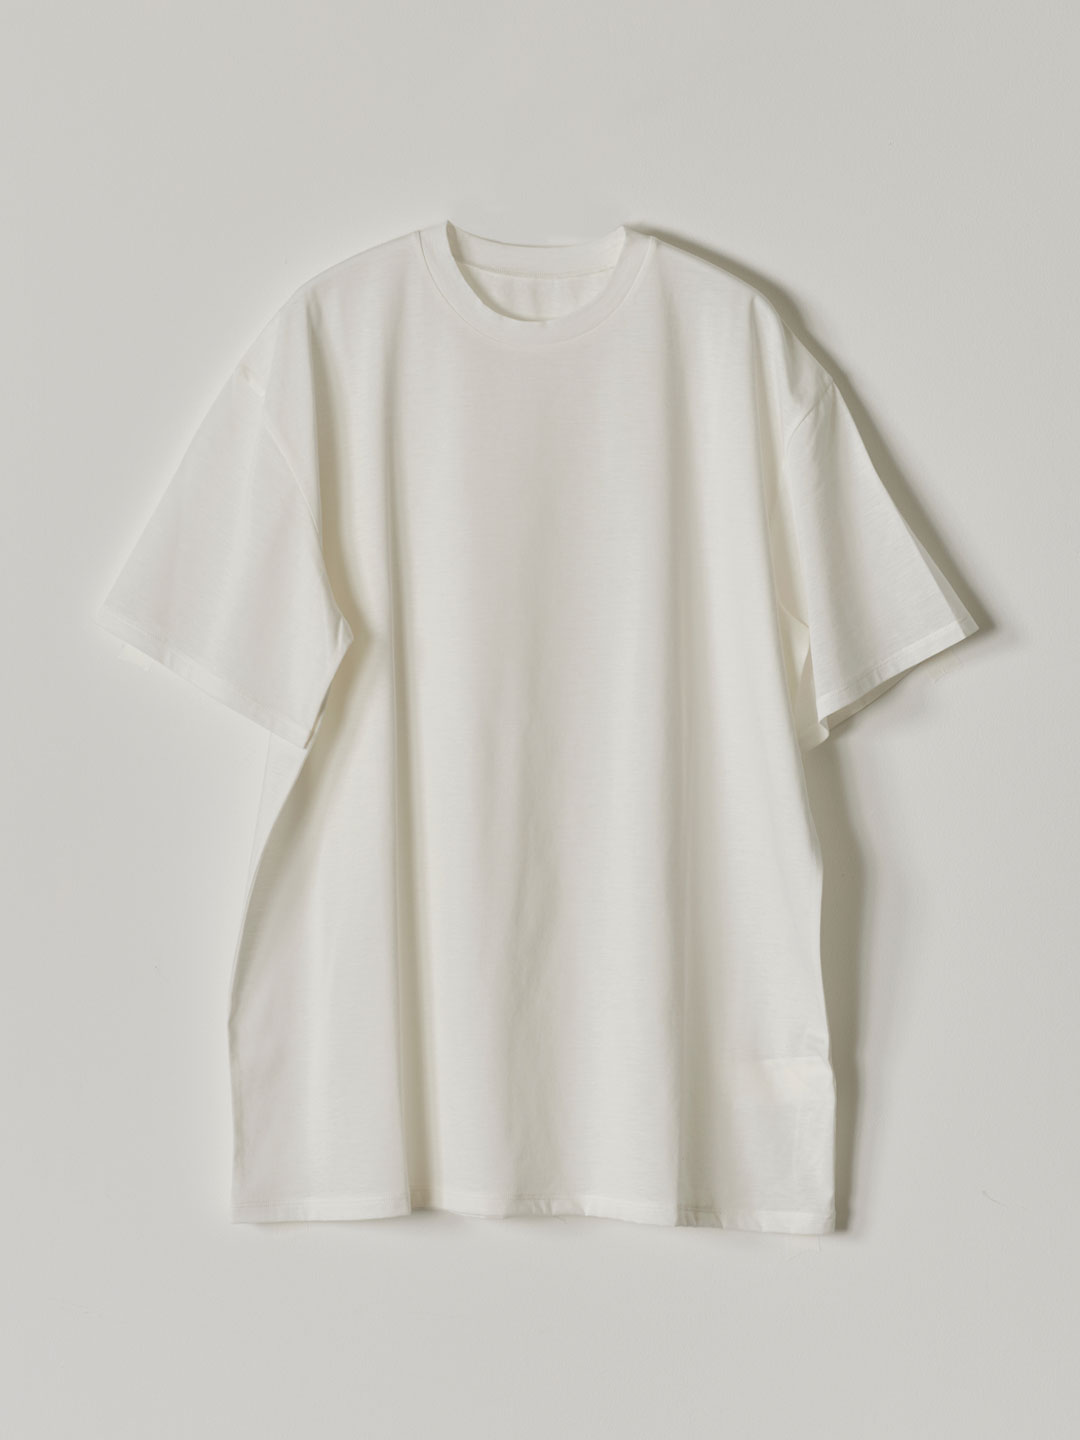 No 0235  High Gauge Cotton Tee - White